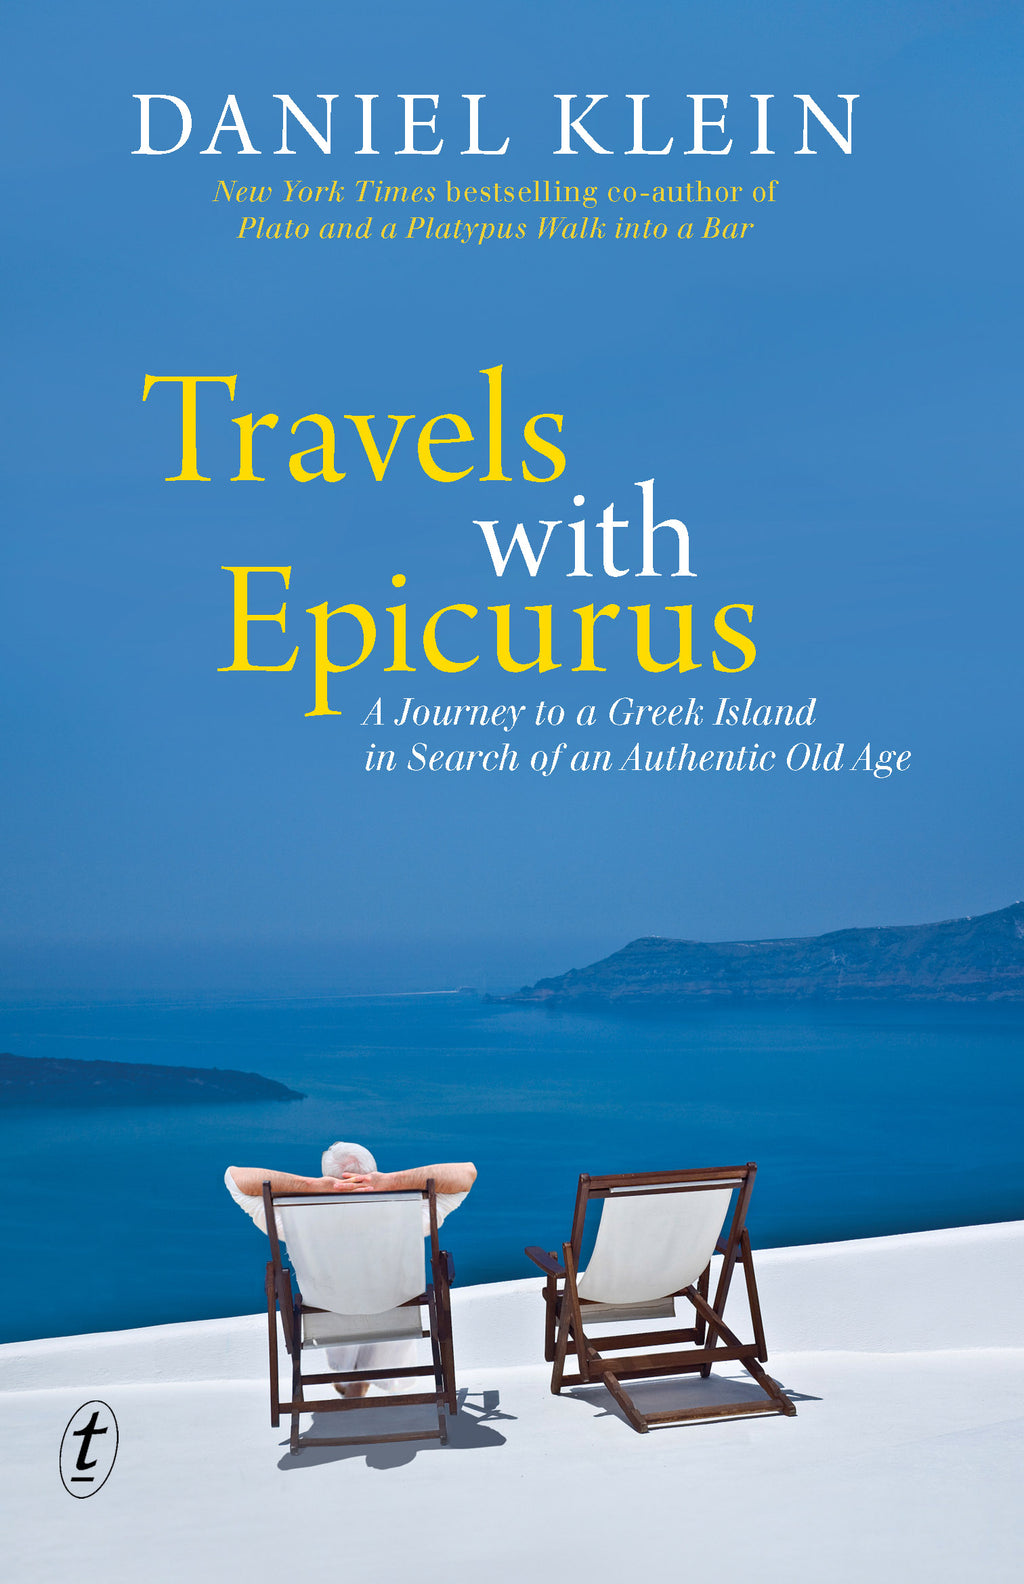 Travels With Epicurus. Give Back To The Rainforest Trust!